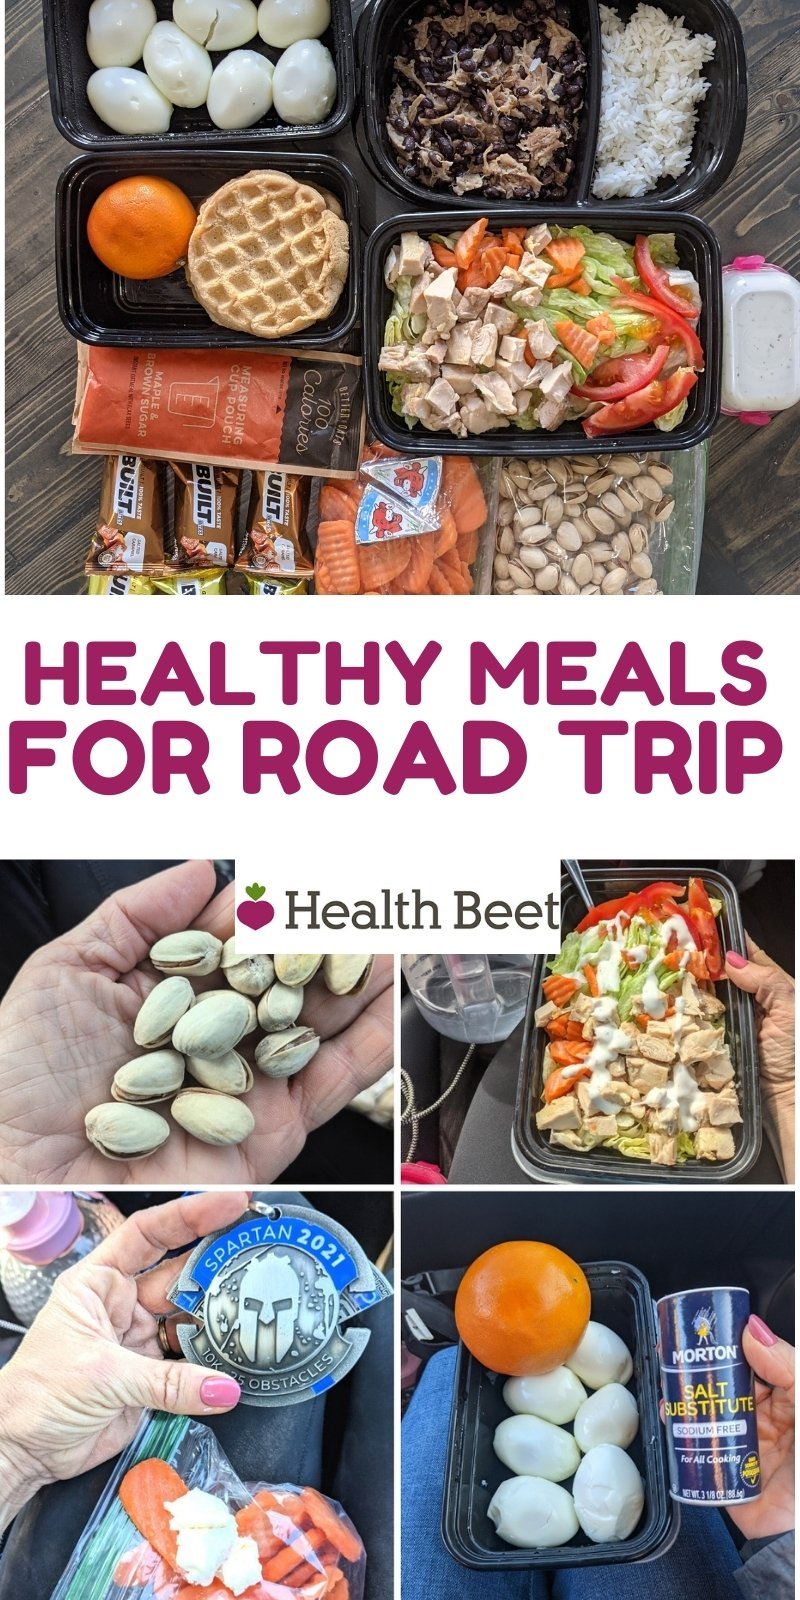 Healthy meals for a road trip